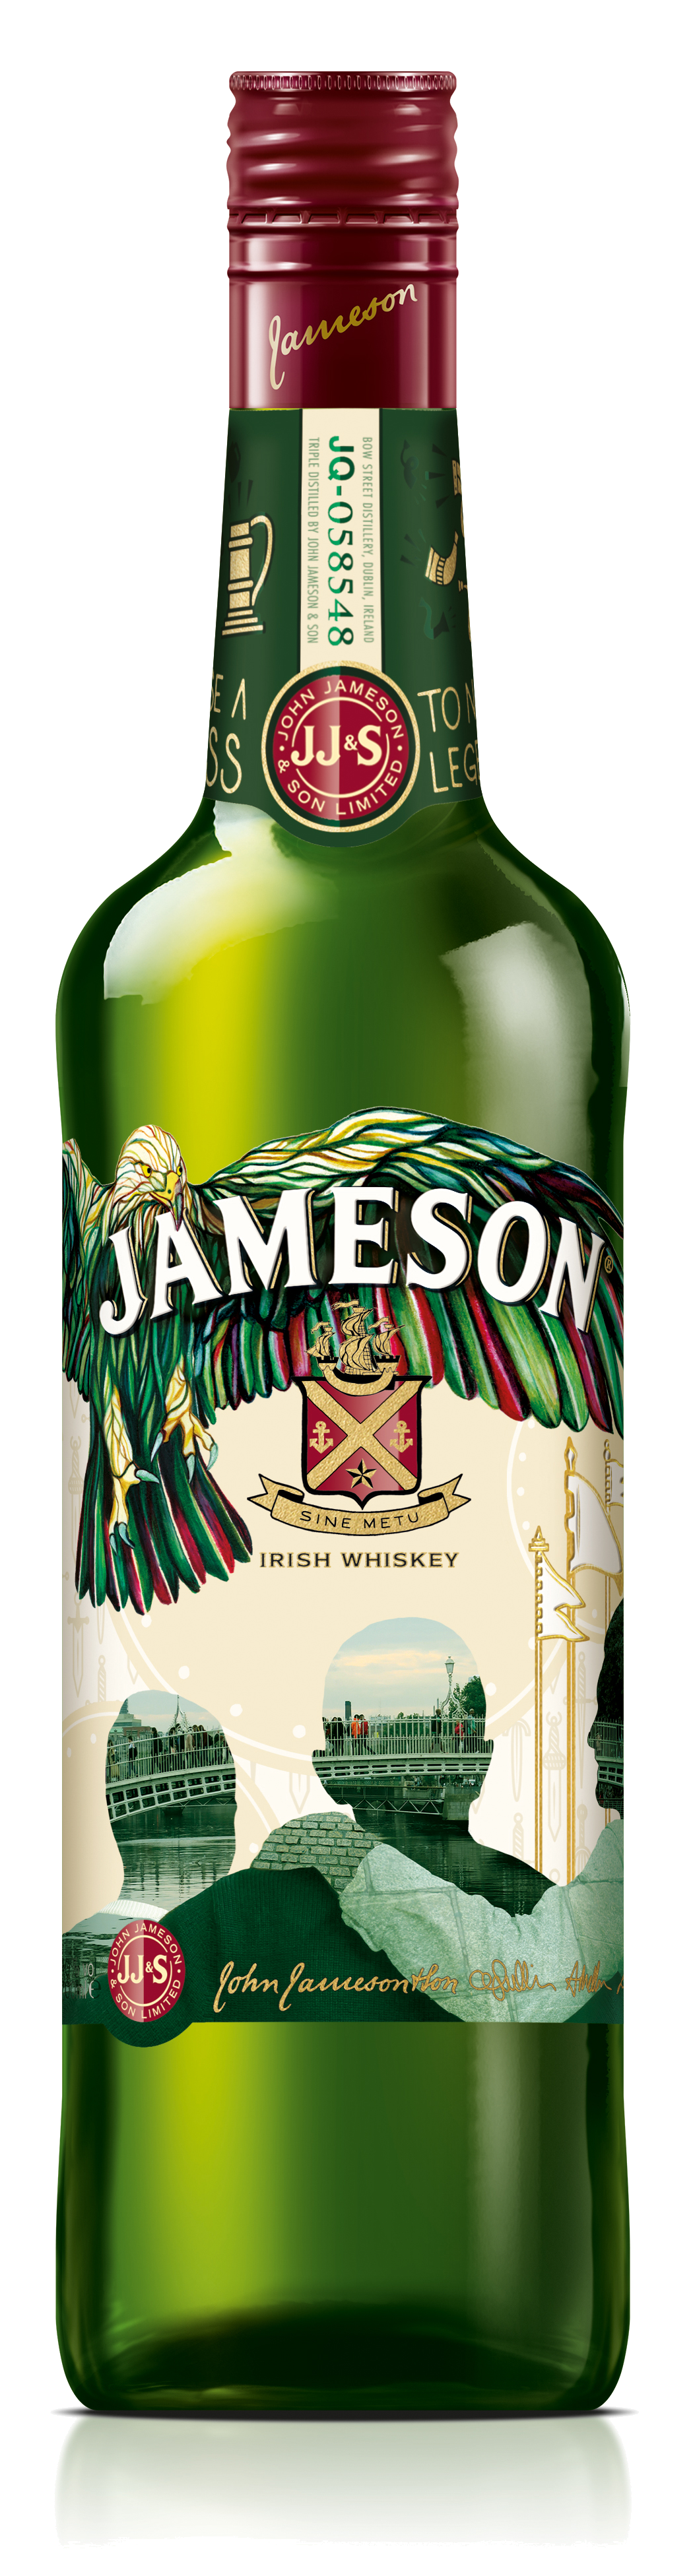 Jameson 1L Limit. ed. Patrick